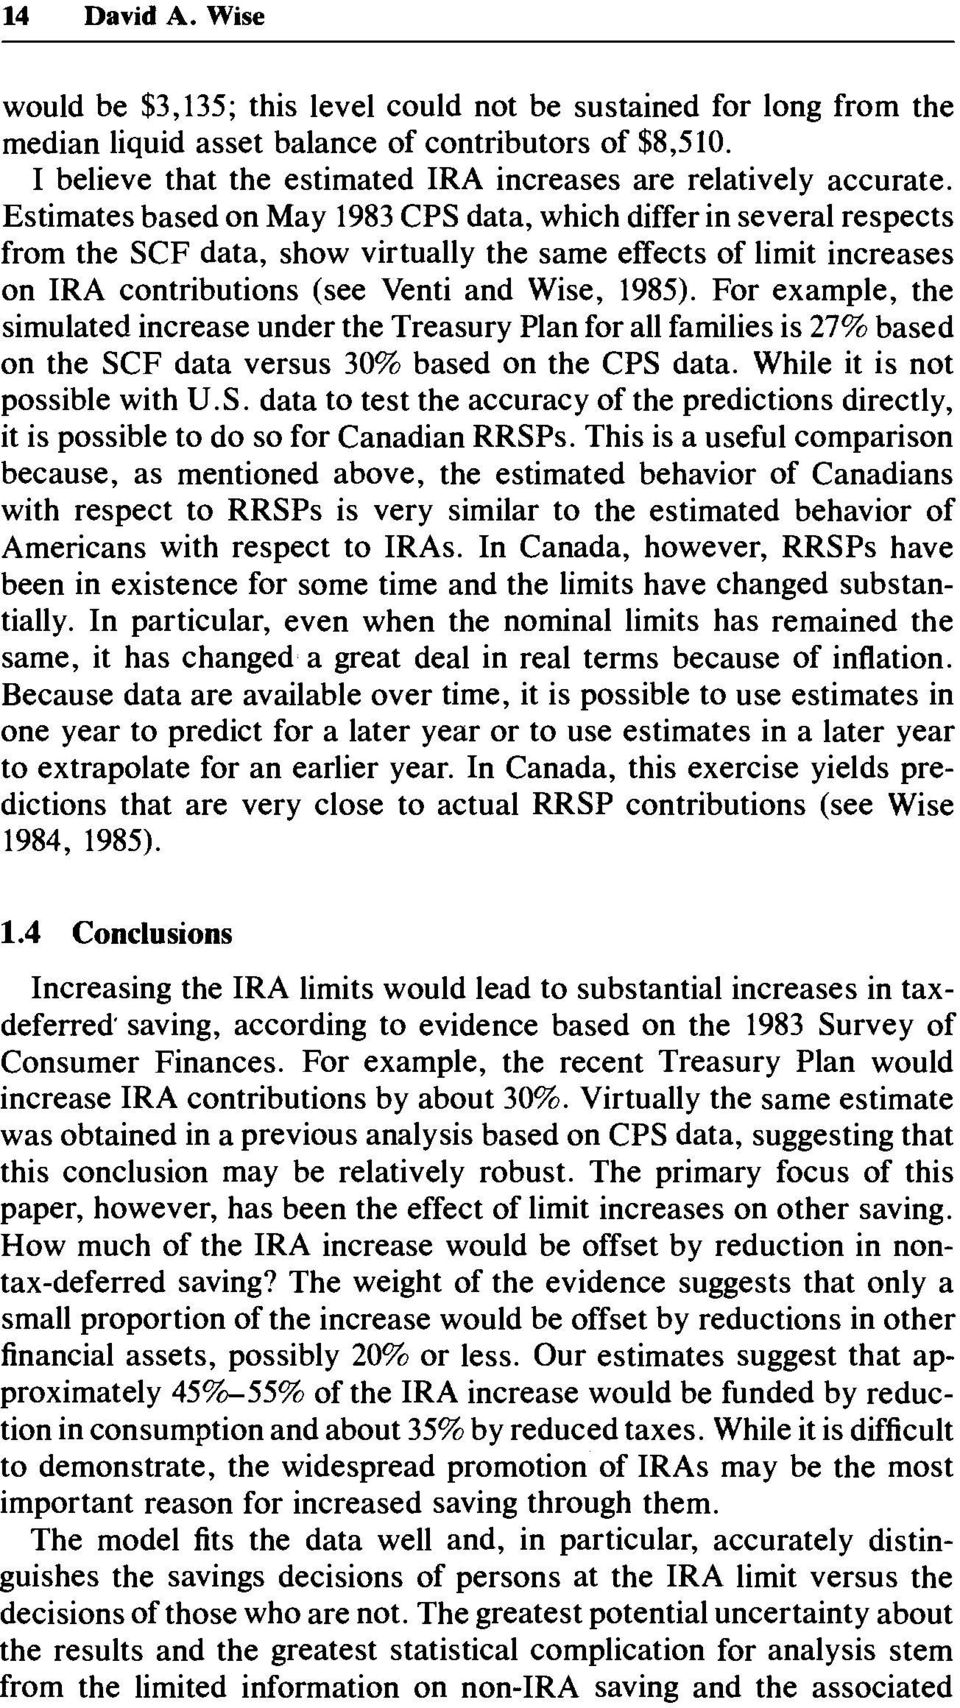 Estimates based on May 1983 CPS data, which differ in several respects from the SCF data, show virtually the same effects of limit increases on IRA contributions (see Venti and Wise, 1985).